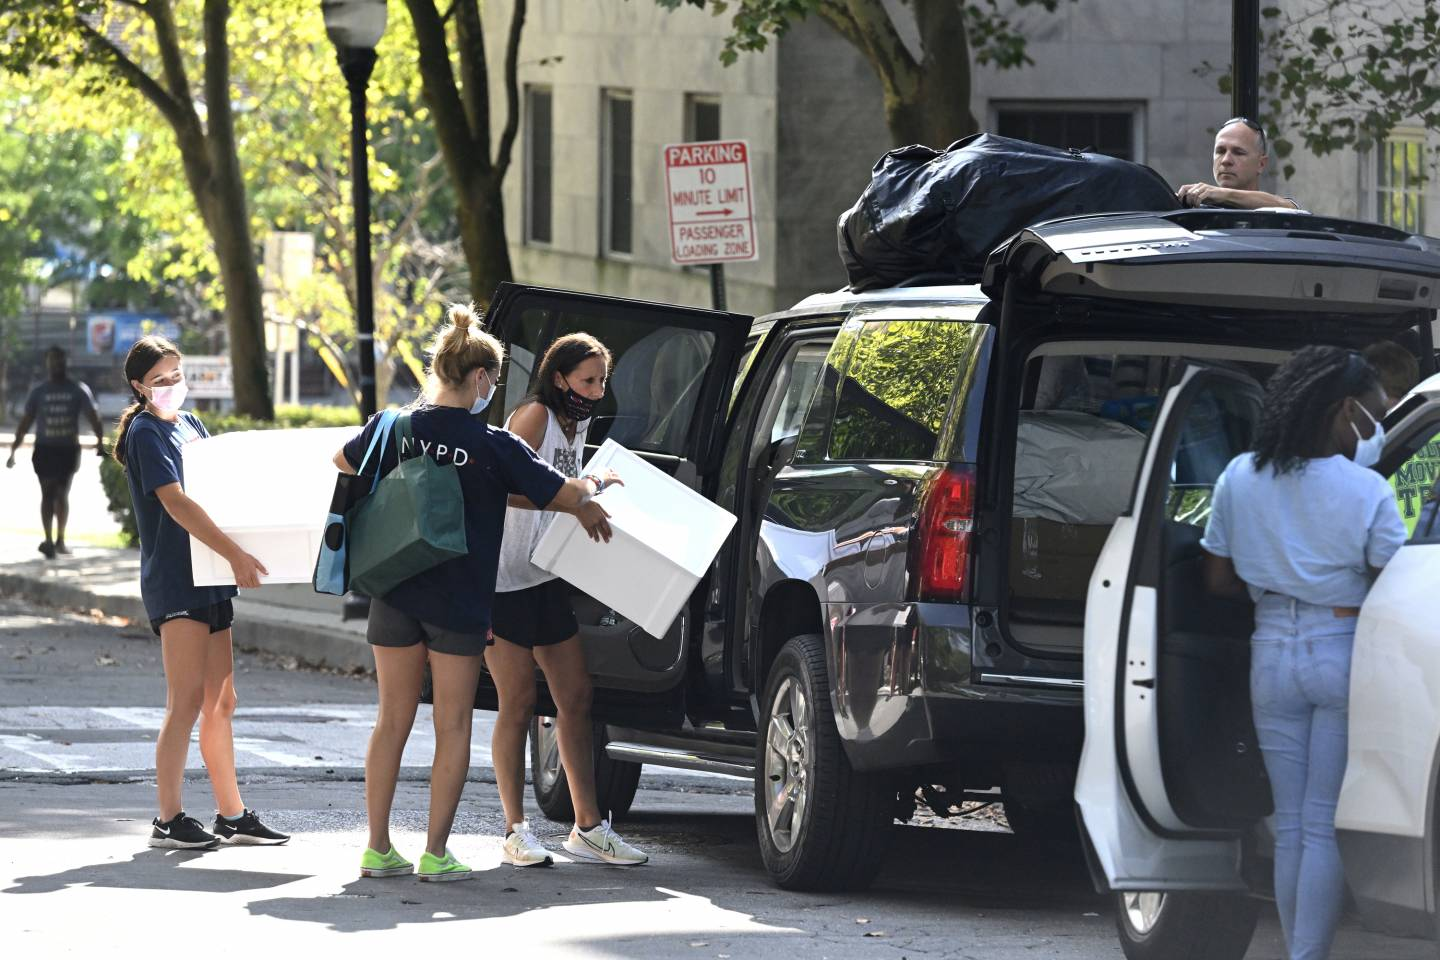 Parents and siblings unload a car during move-in